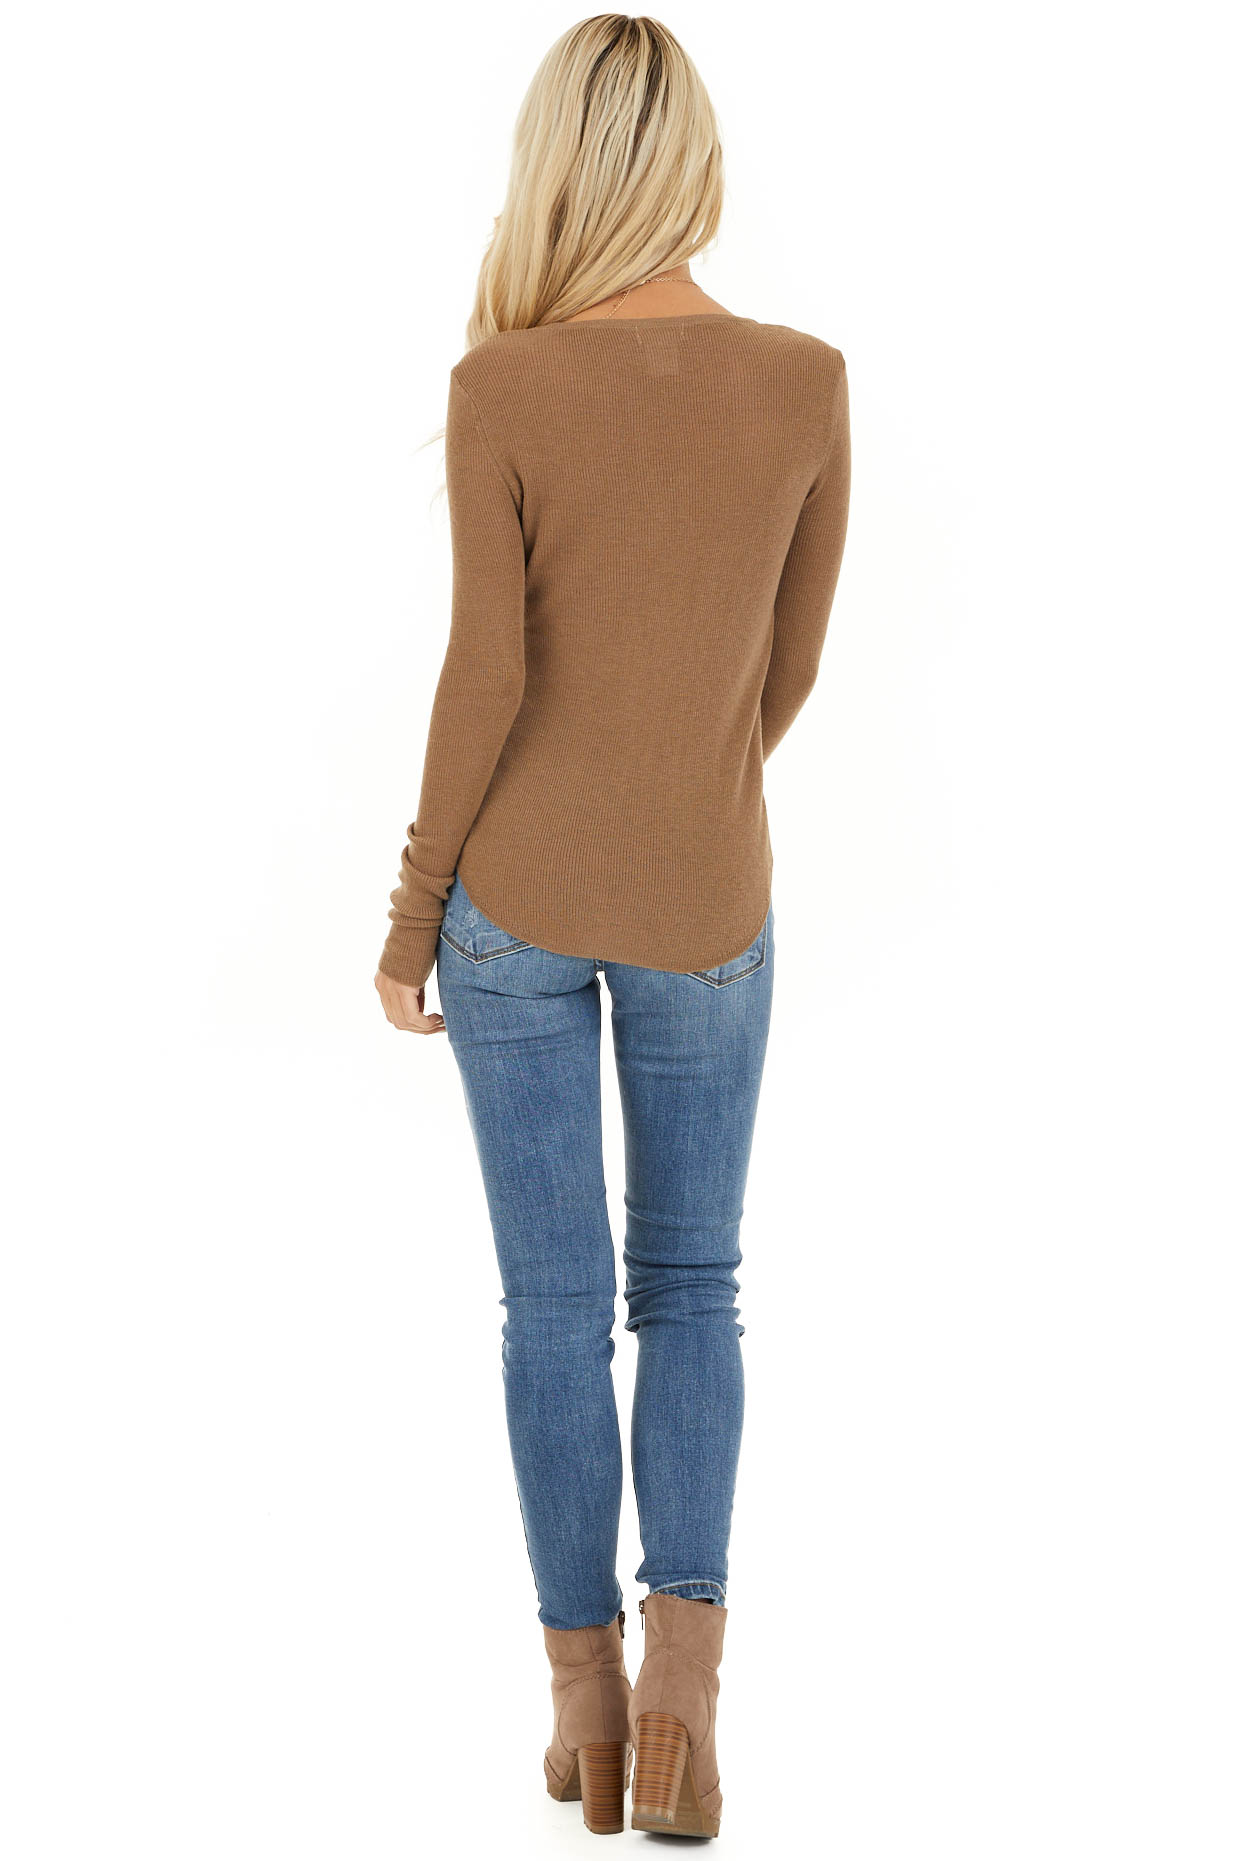 Dark Beige Scoop Neck Ribbed Knit Top with Long Sleeves back full body